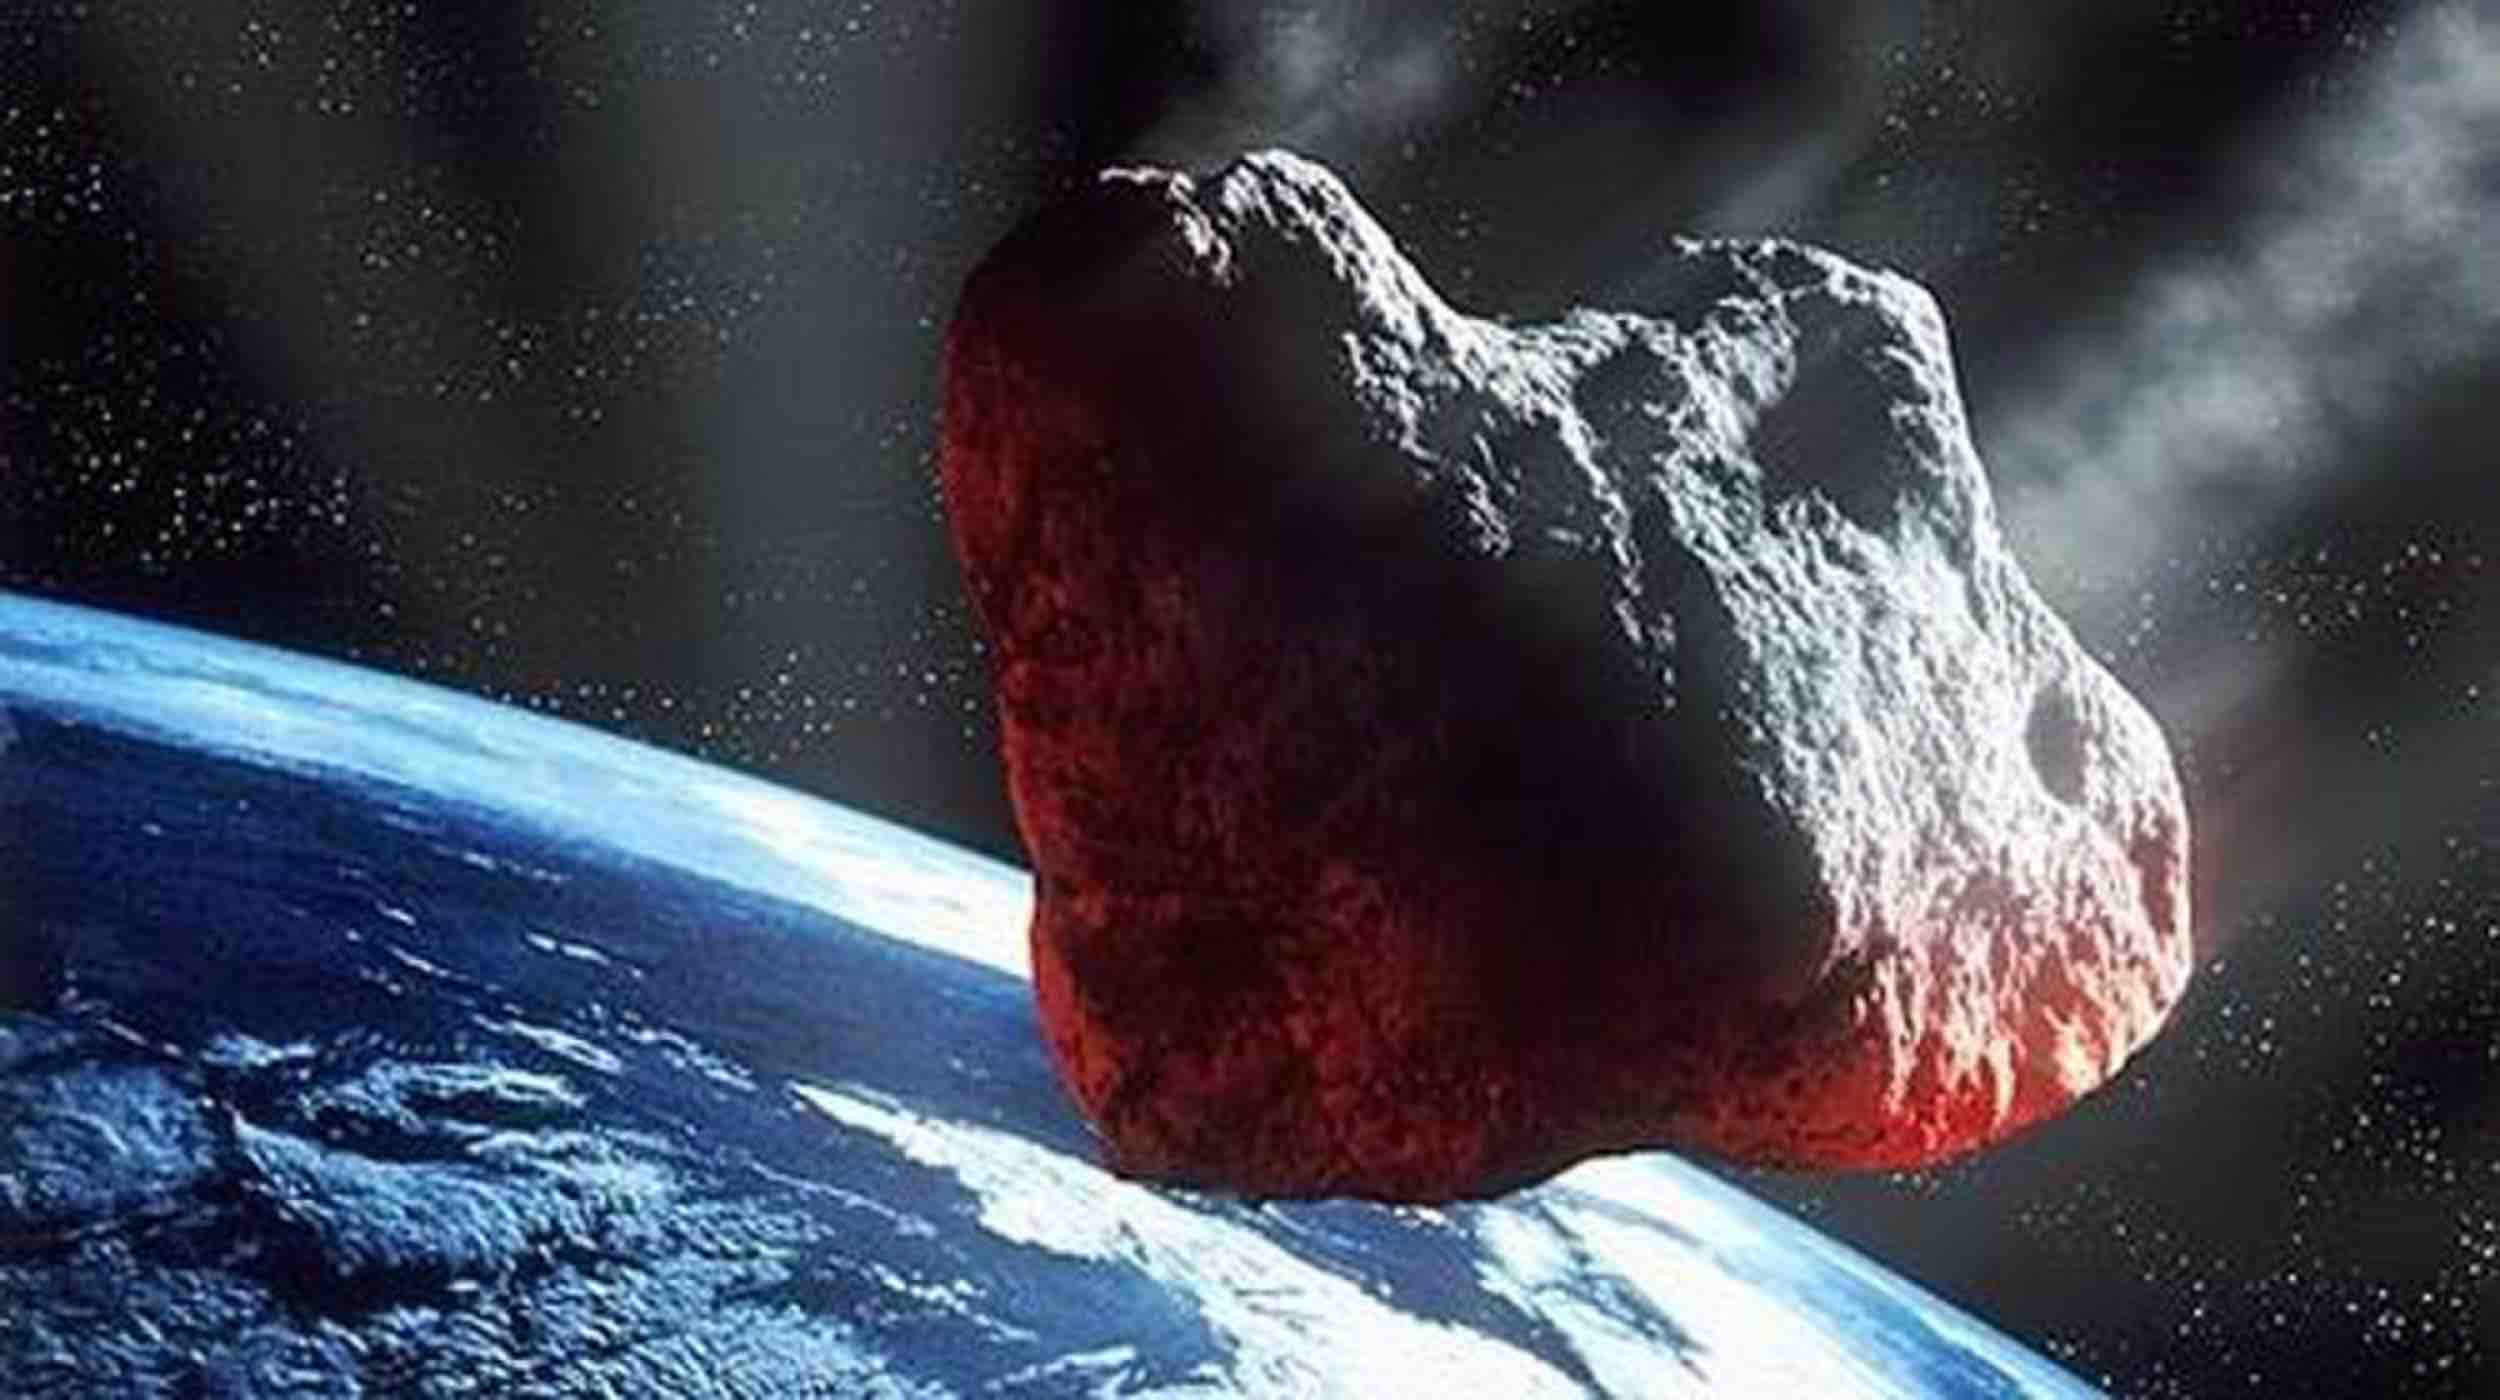 Sm-esa-asteroid_small